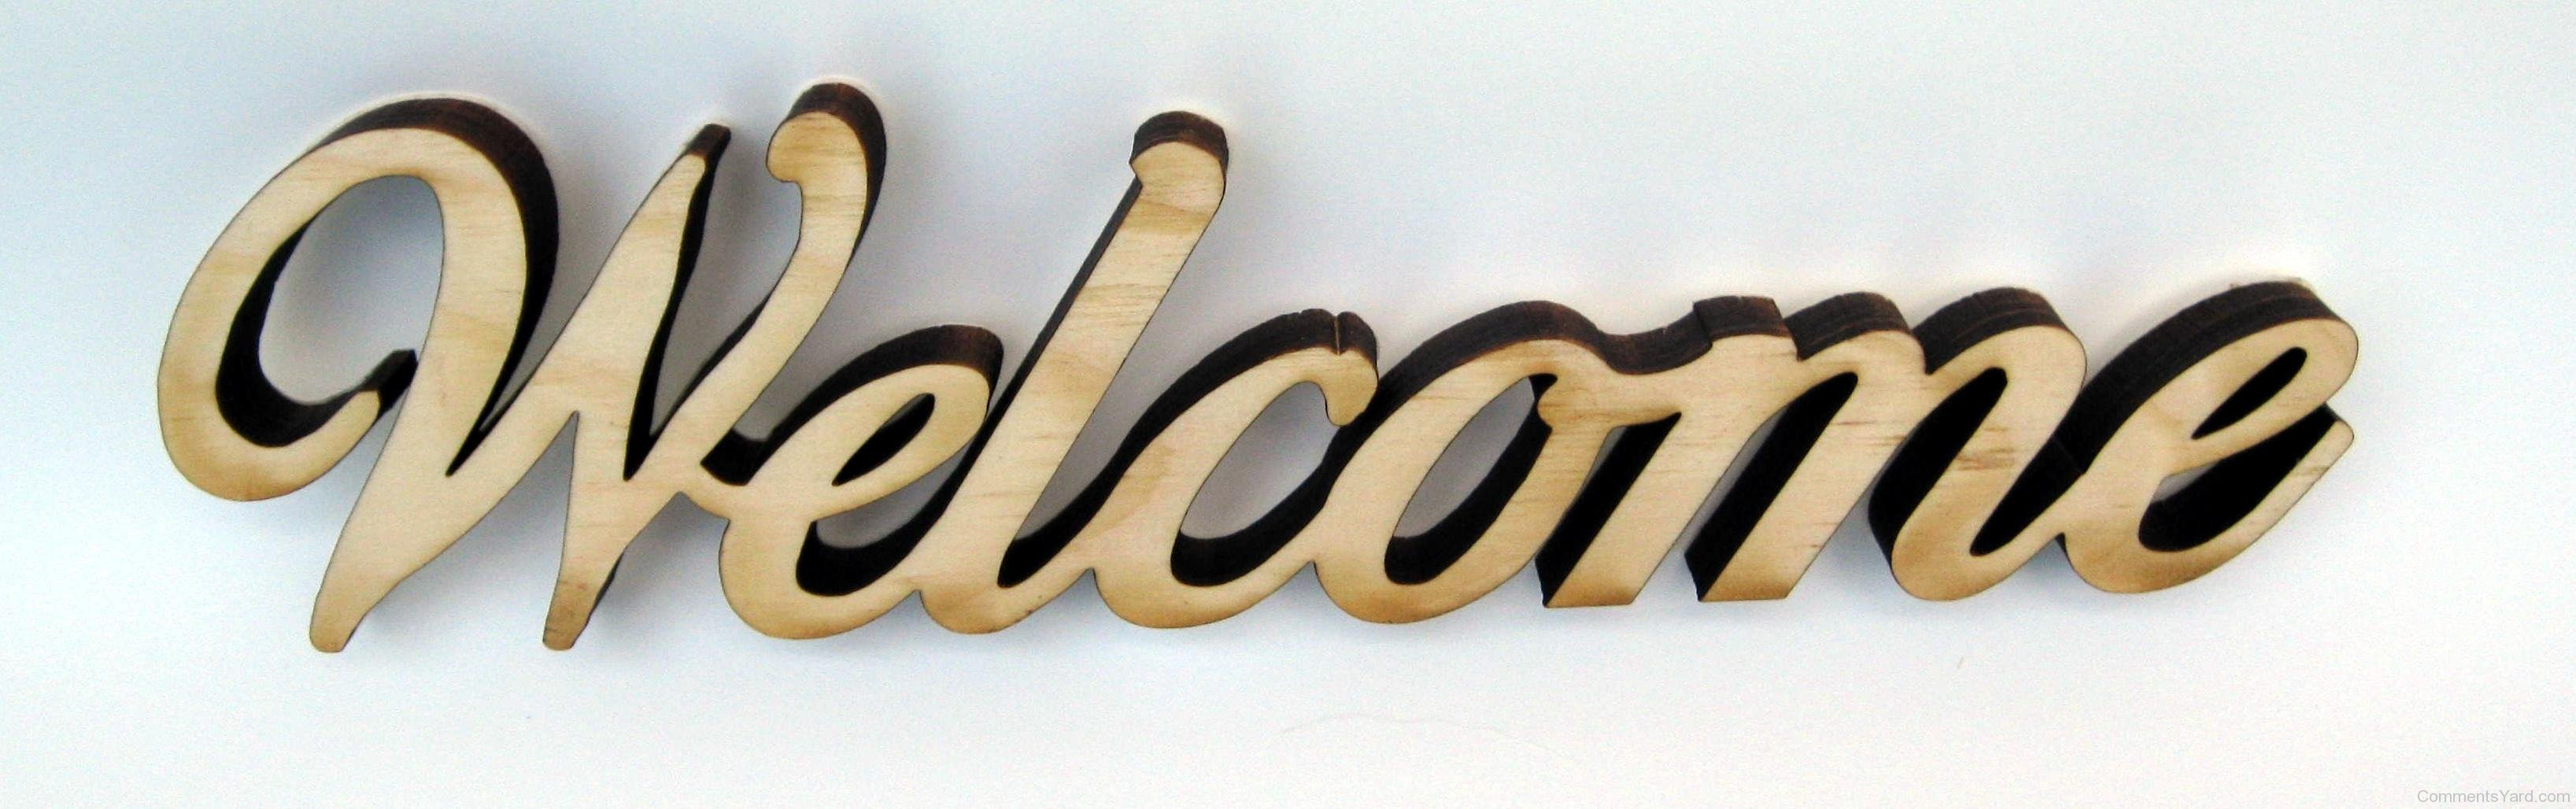 Welcome-Header-Image.jpg